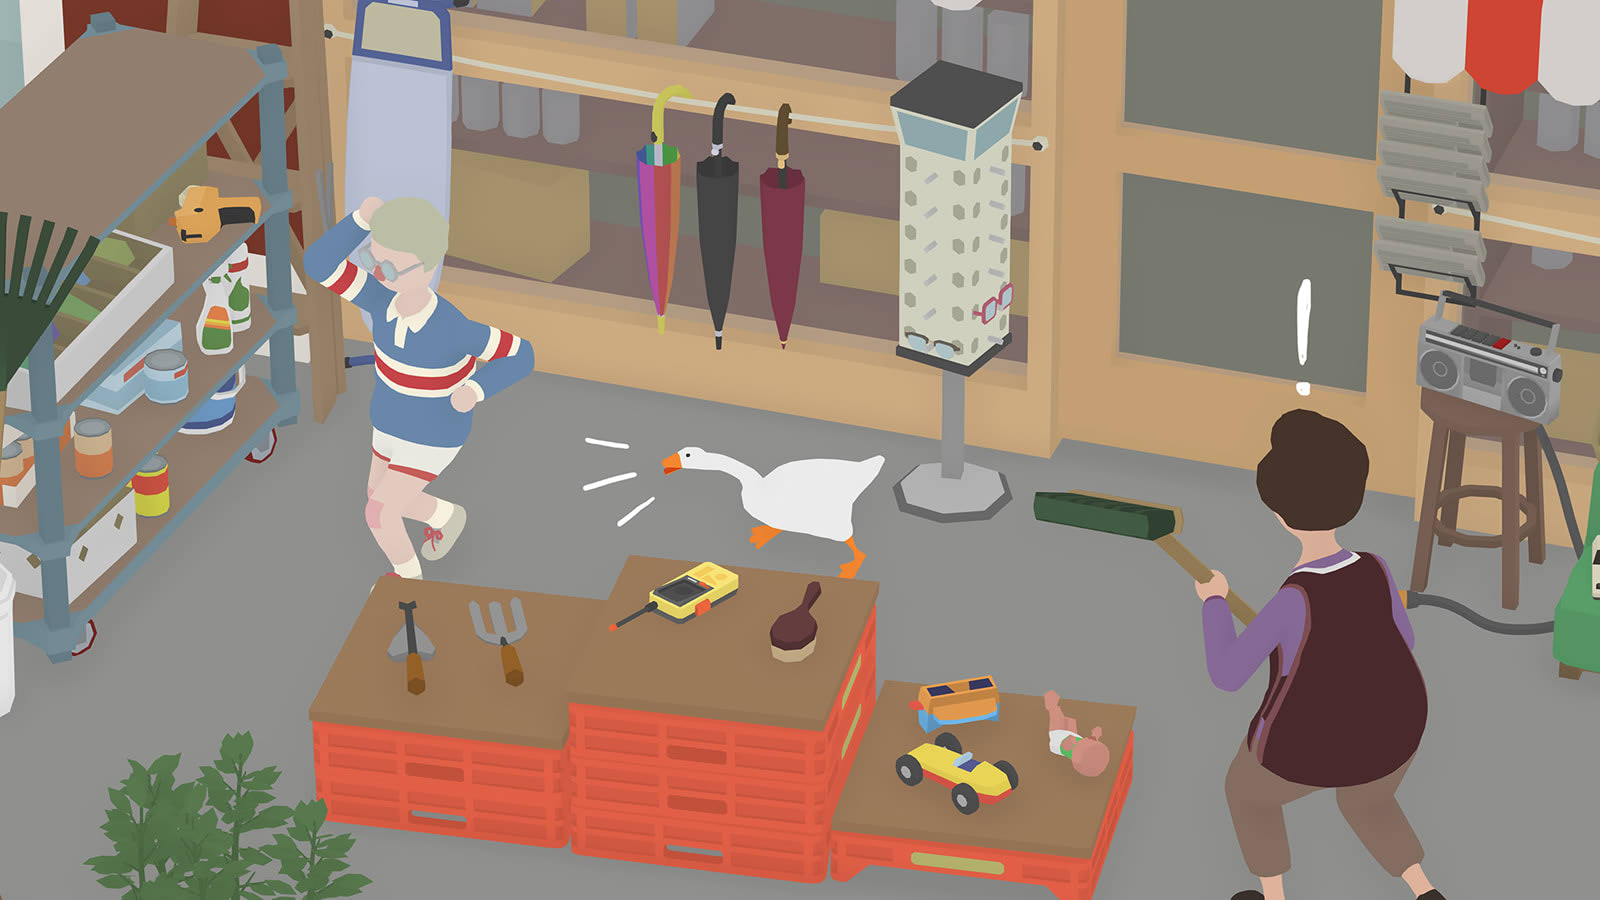 'Untitled Goose Game' will unleash avian chaos on September 20th